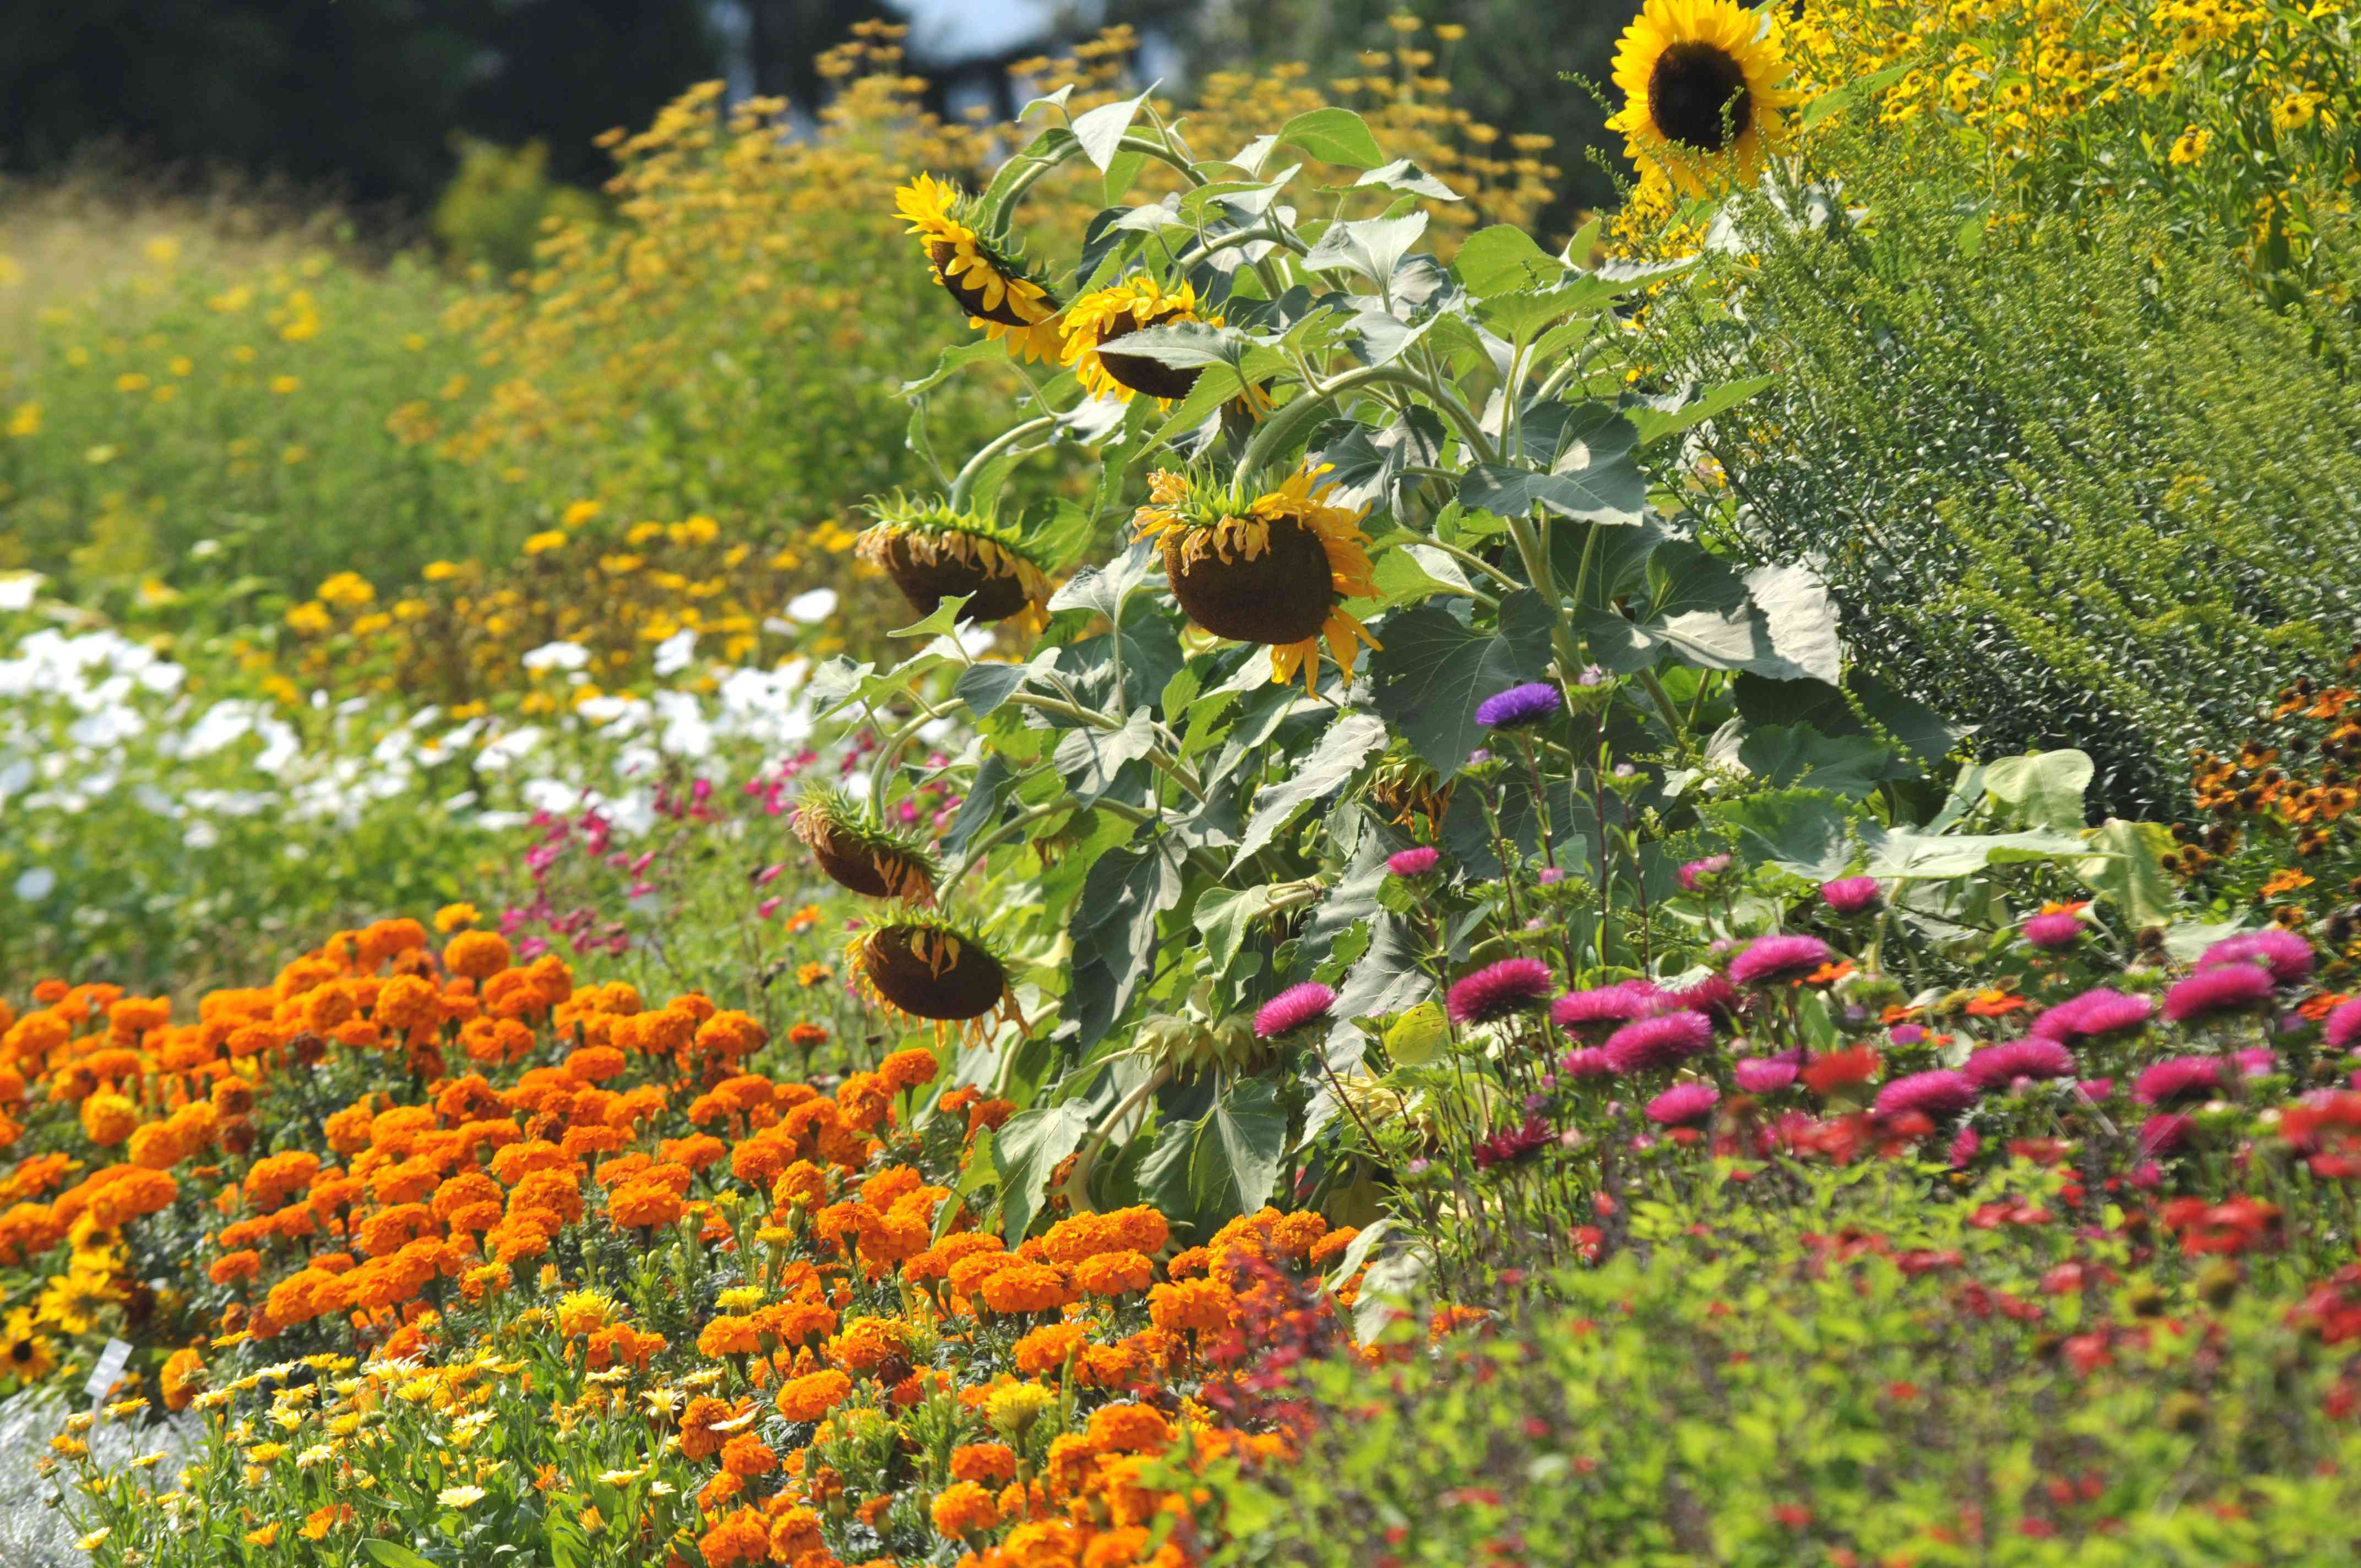 Flowerbed with annual plants and flowers